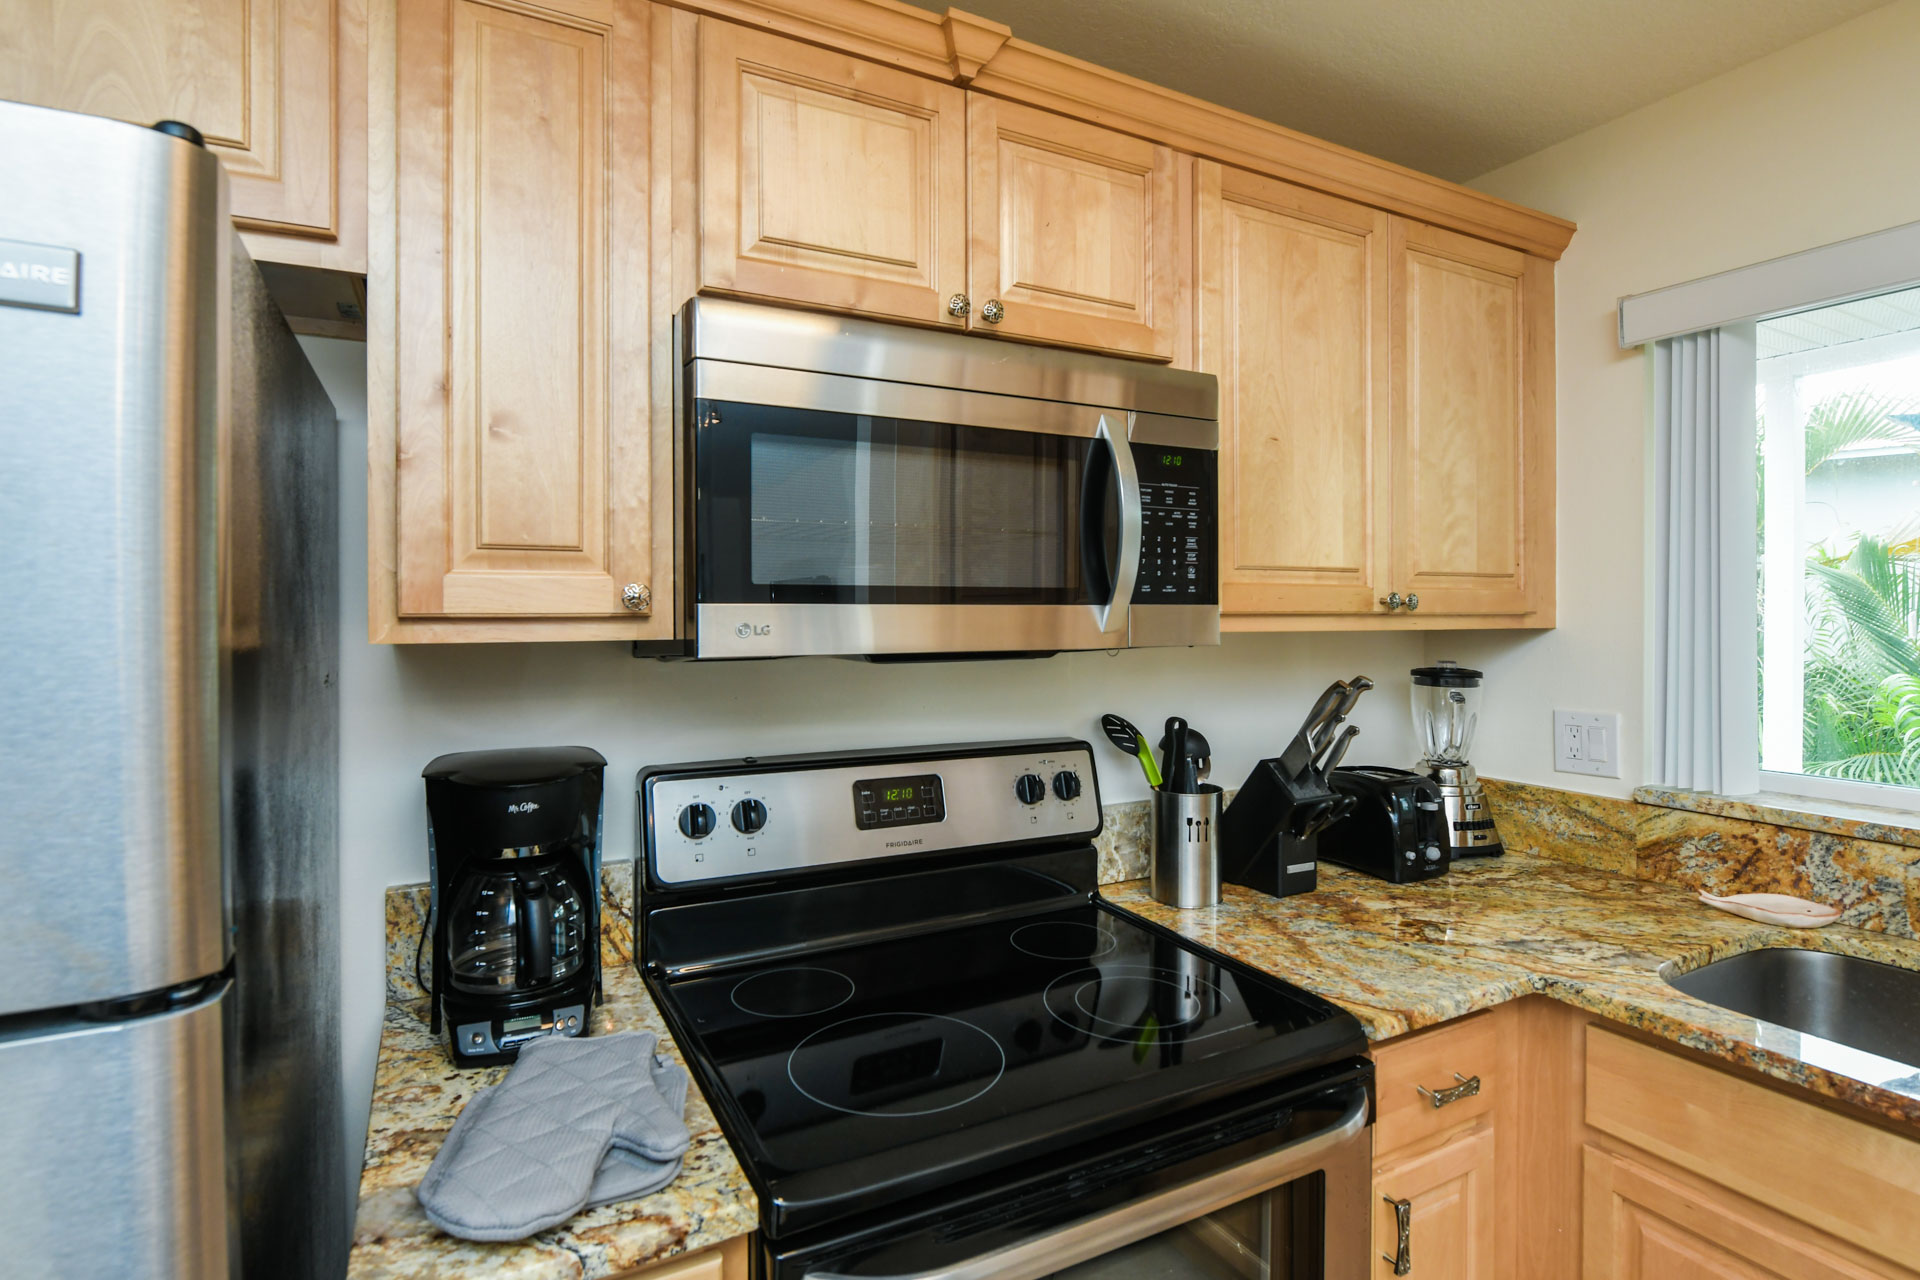 Flat top stove and microwave